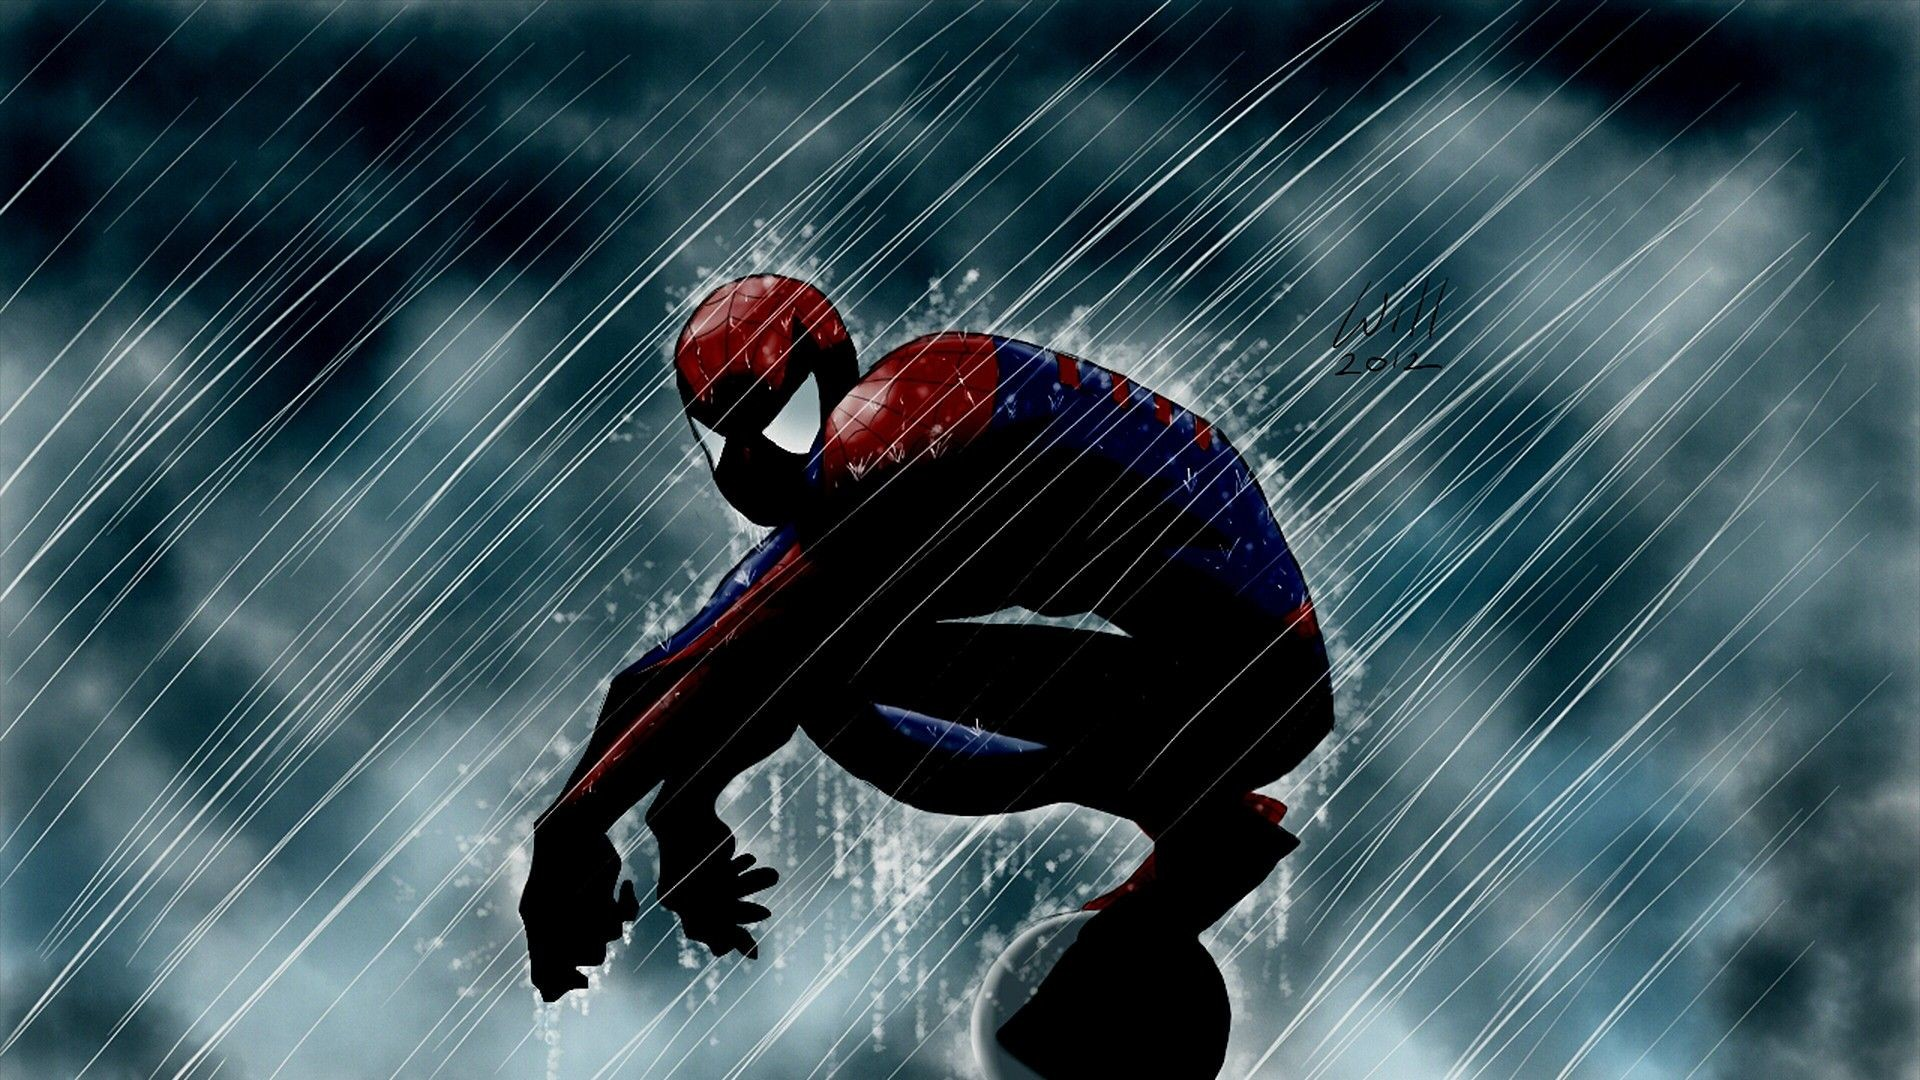 Awesome dramatic Spiderman in the rain wallpaper [1920×1080]